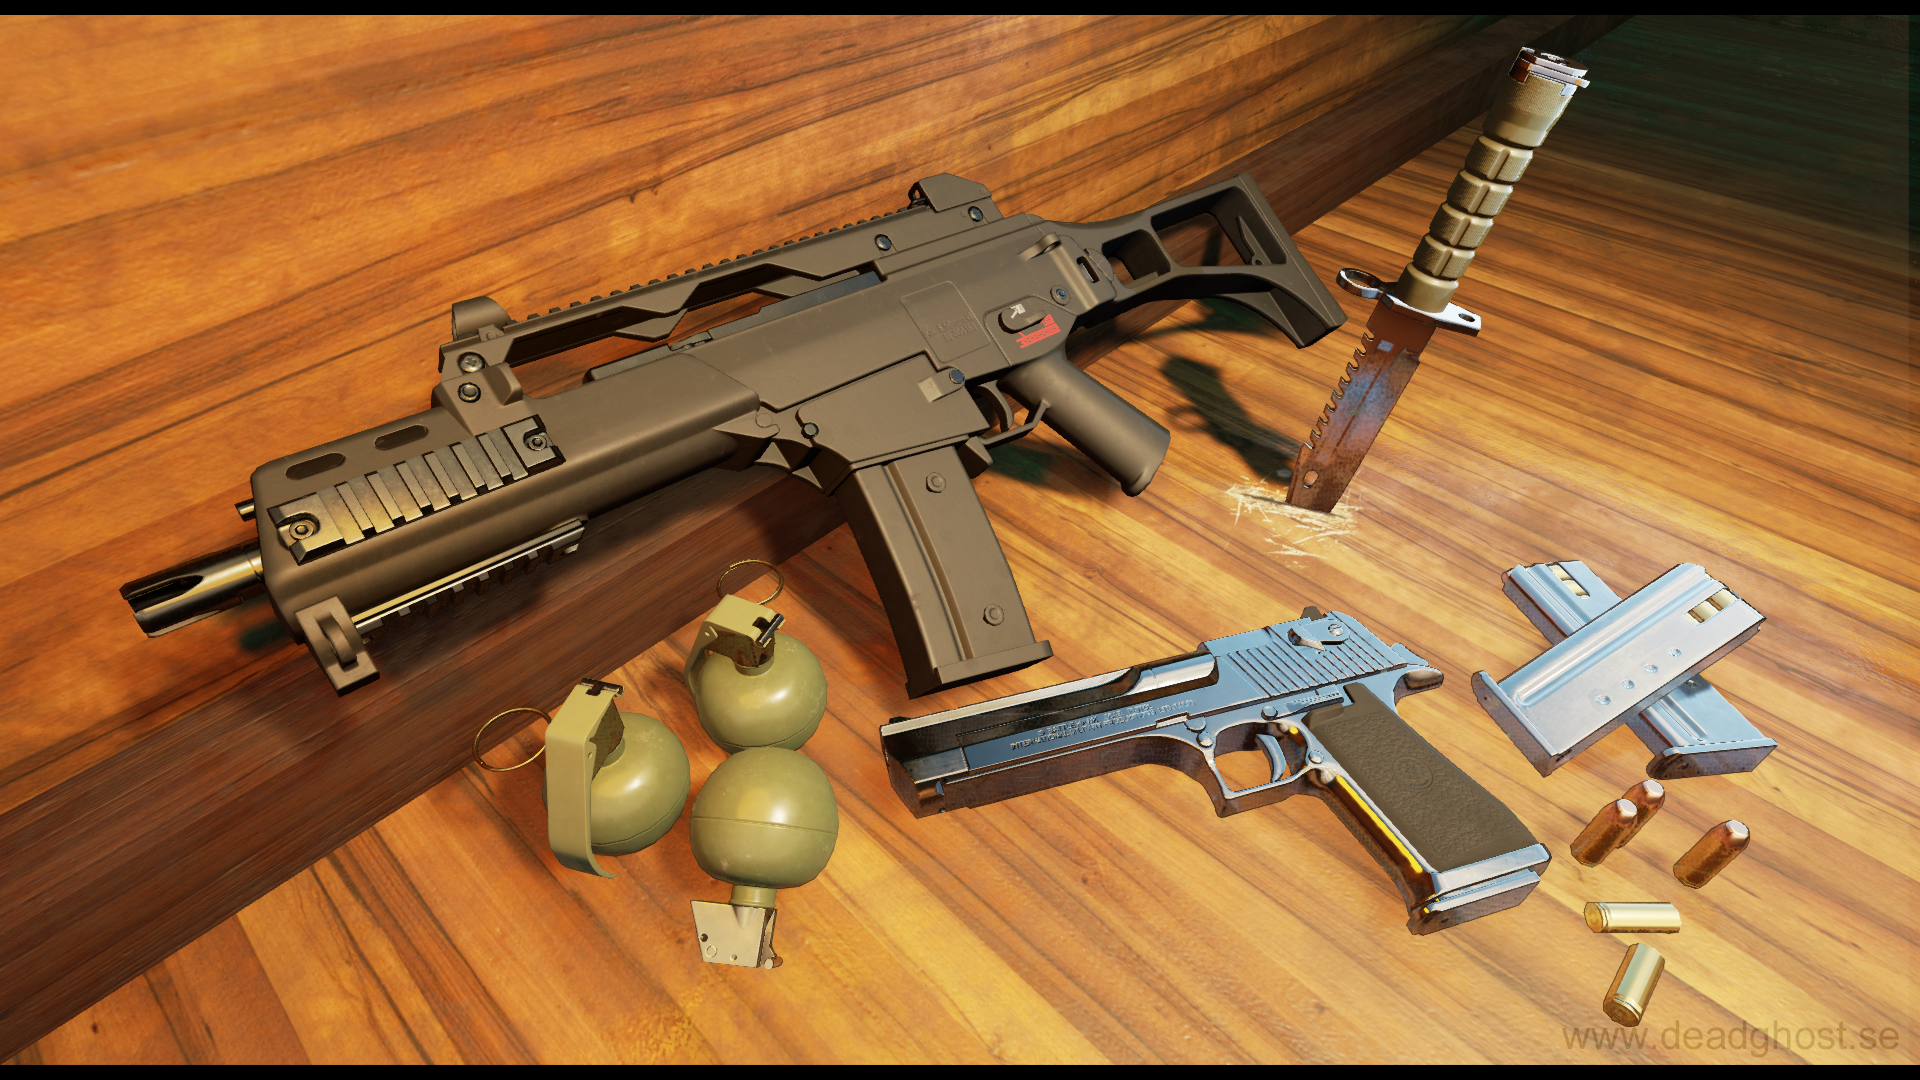 FPS Weapon Pack by Deadghost Interactive in Weapons - UE4 Marketplace